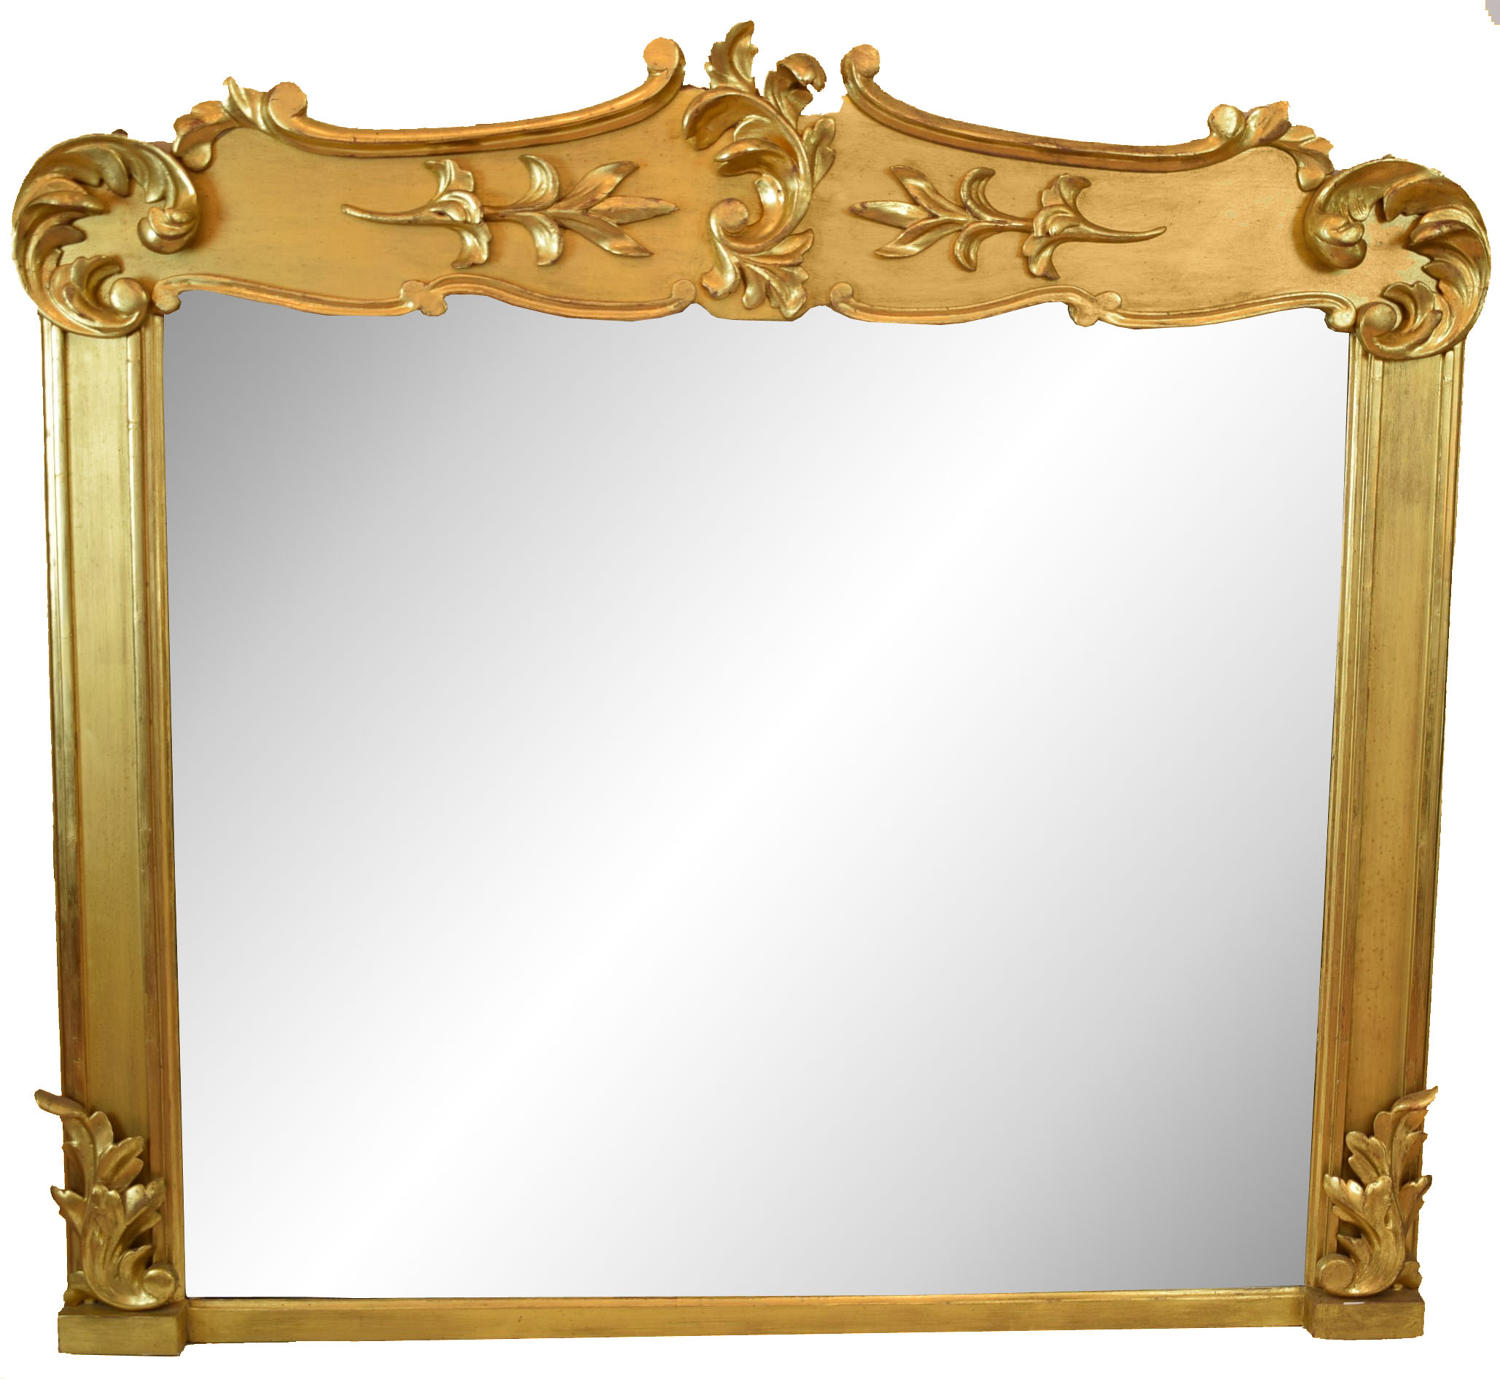 A rare Irish Antique gilded overmantle mirror